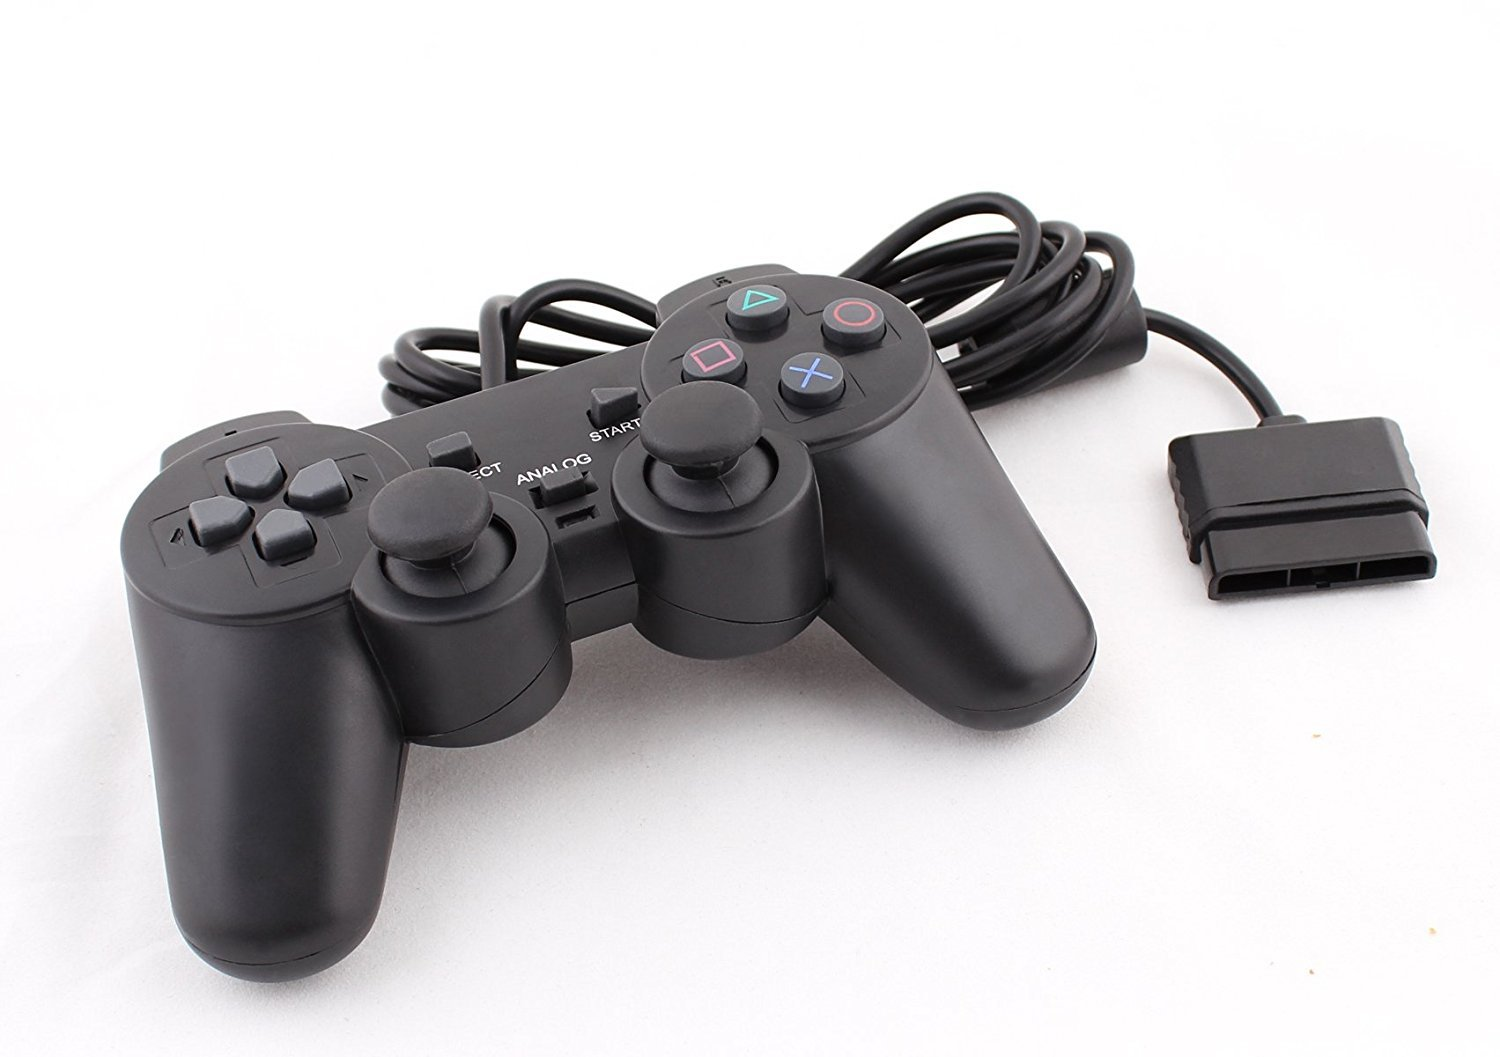 Play Station 2 Wired Controller, Gamepad, Black